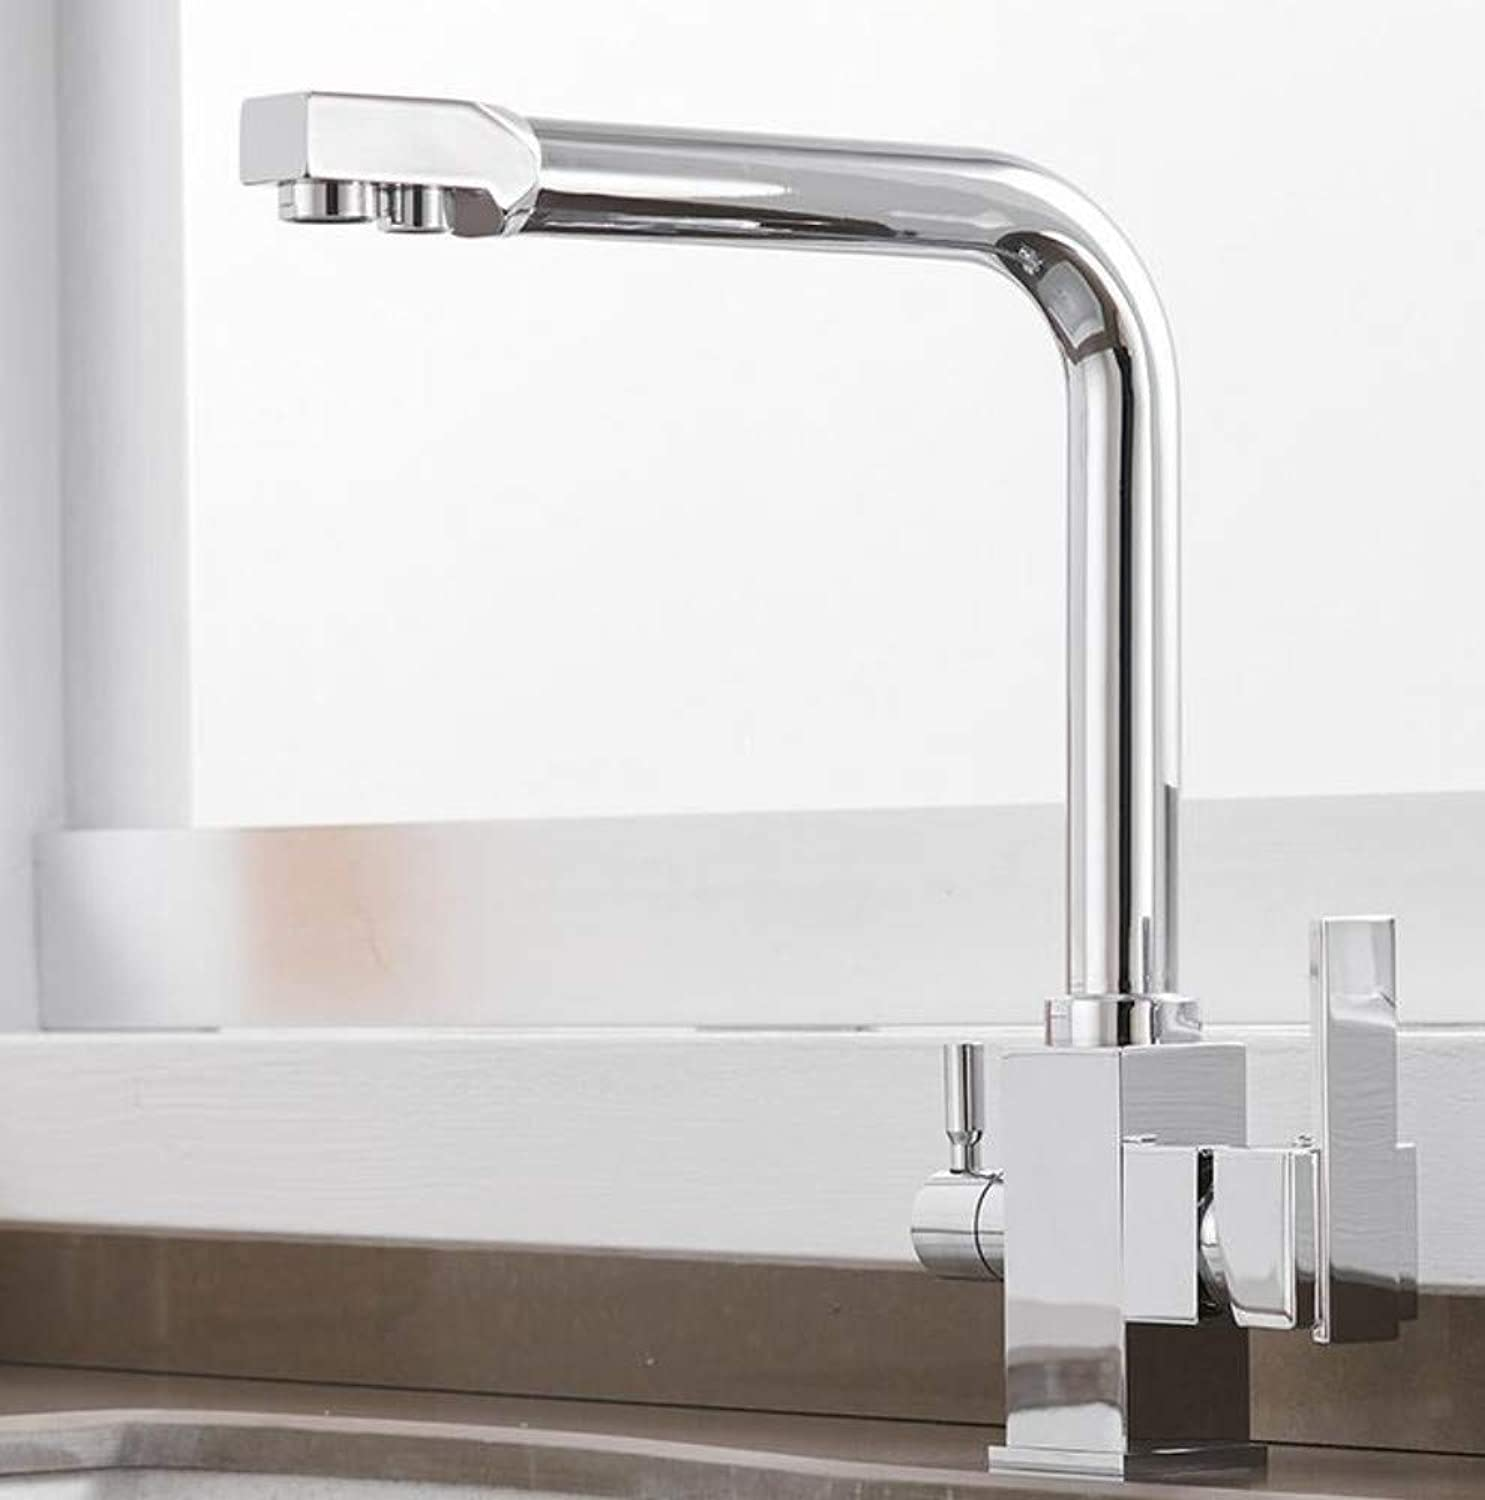 Bathroom Faucet Deck Mount Mixer Tap 360 Degree redation with Water Purification Features Single Hole Crane for Kitchen